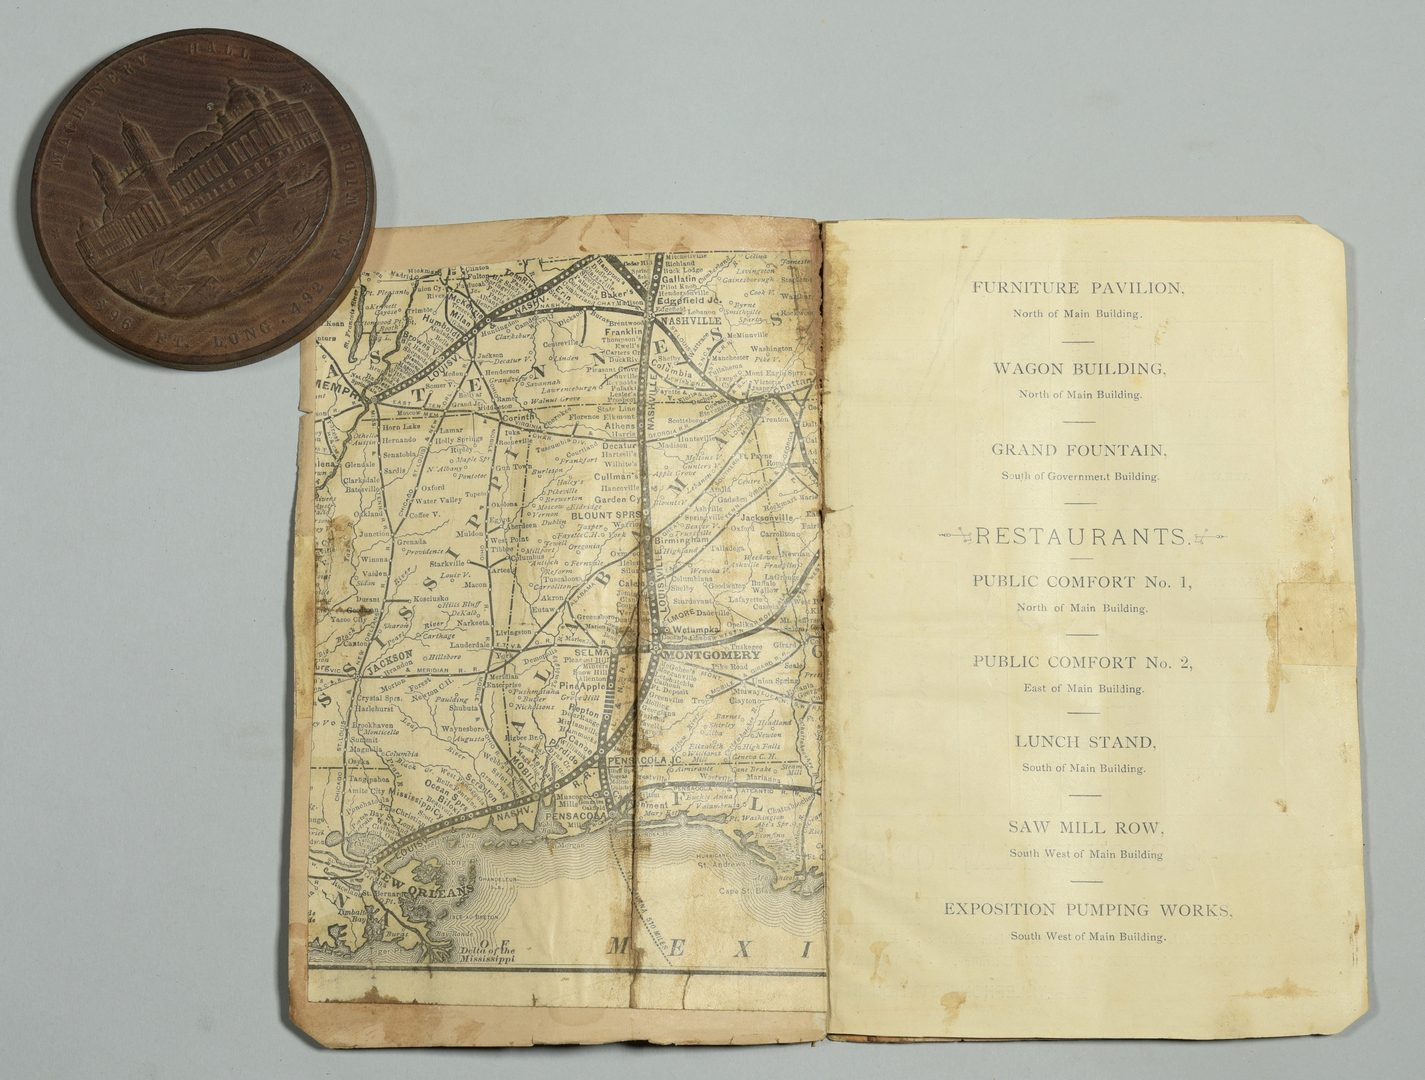 Lot 750: World Fair items inc. New Orleans Map